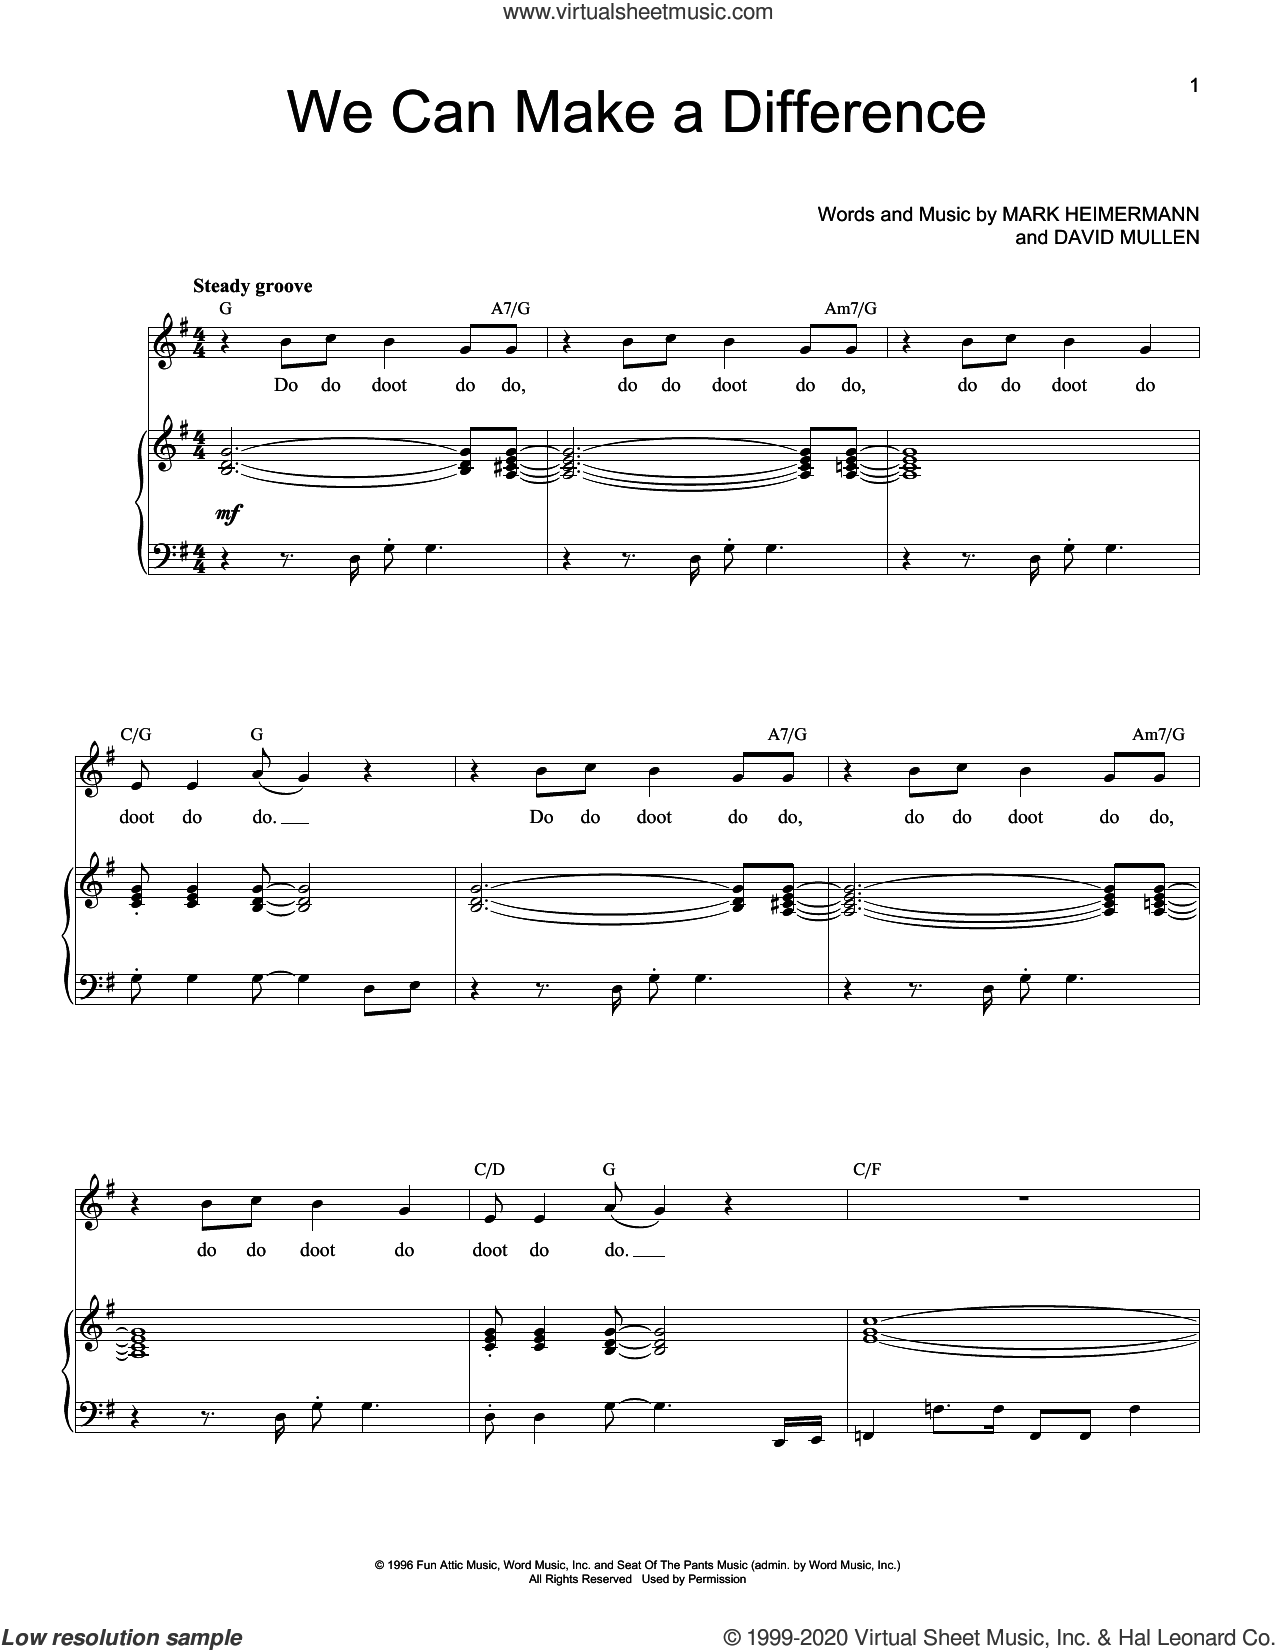 We Can Make A Difference sheet music for voice and piano (High Voice) by Jaci Velasquez, David Mullen and Mark Heimermann, intermediate skill level